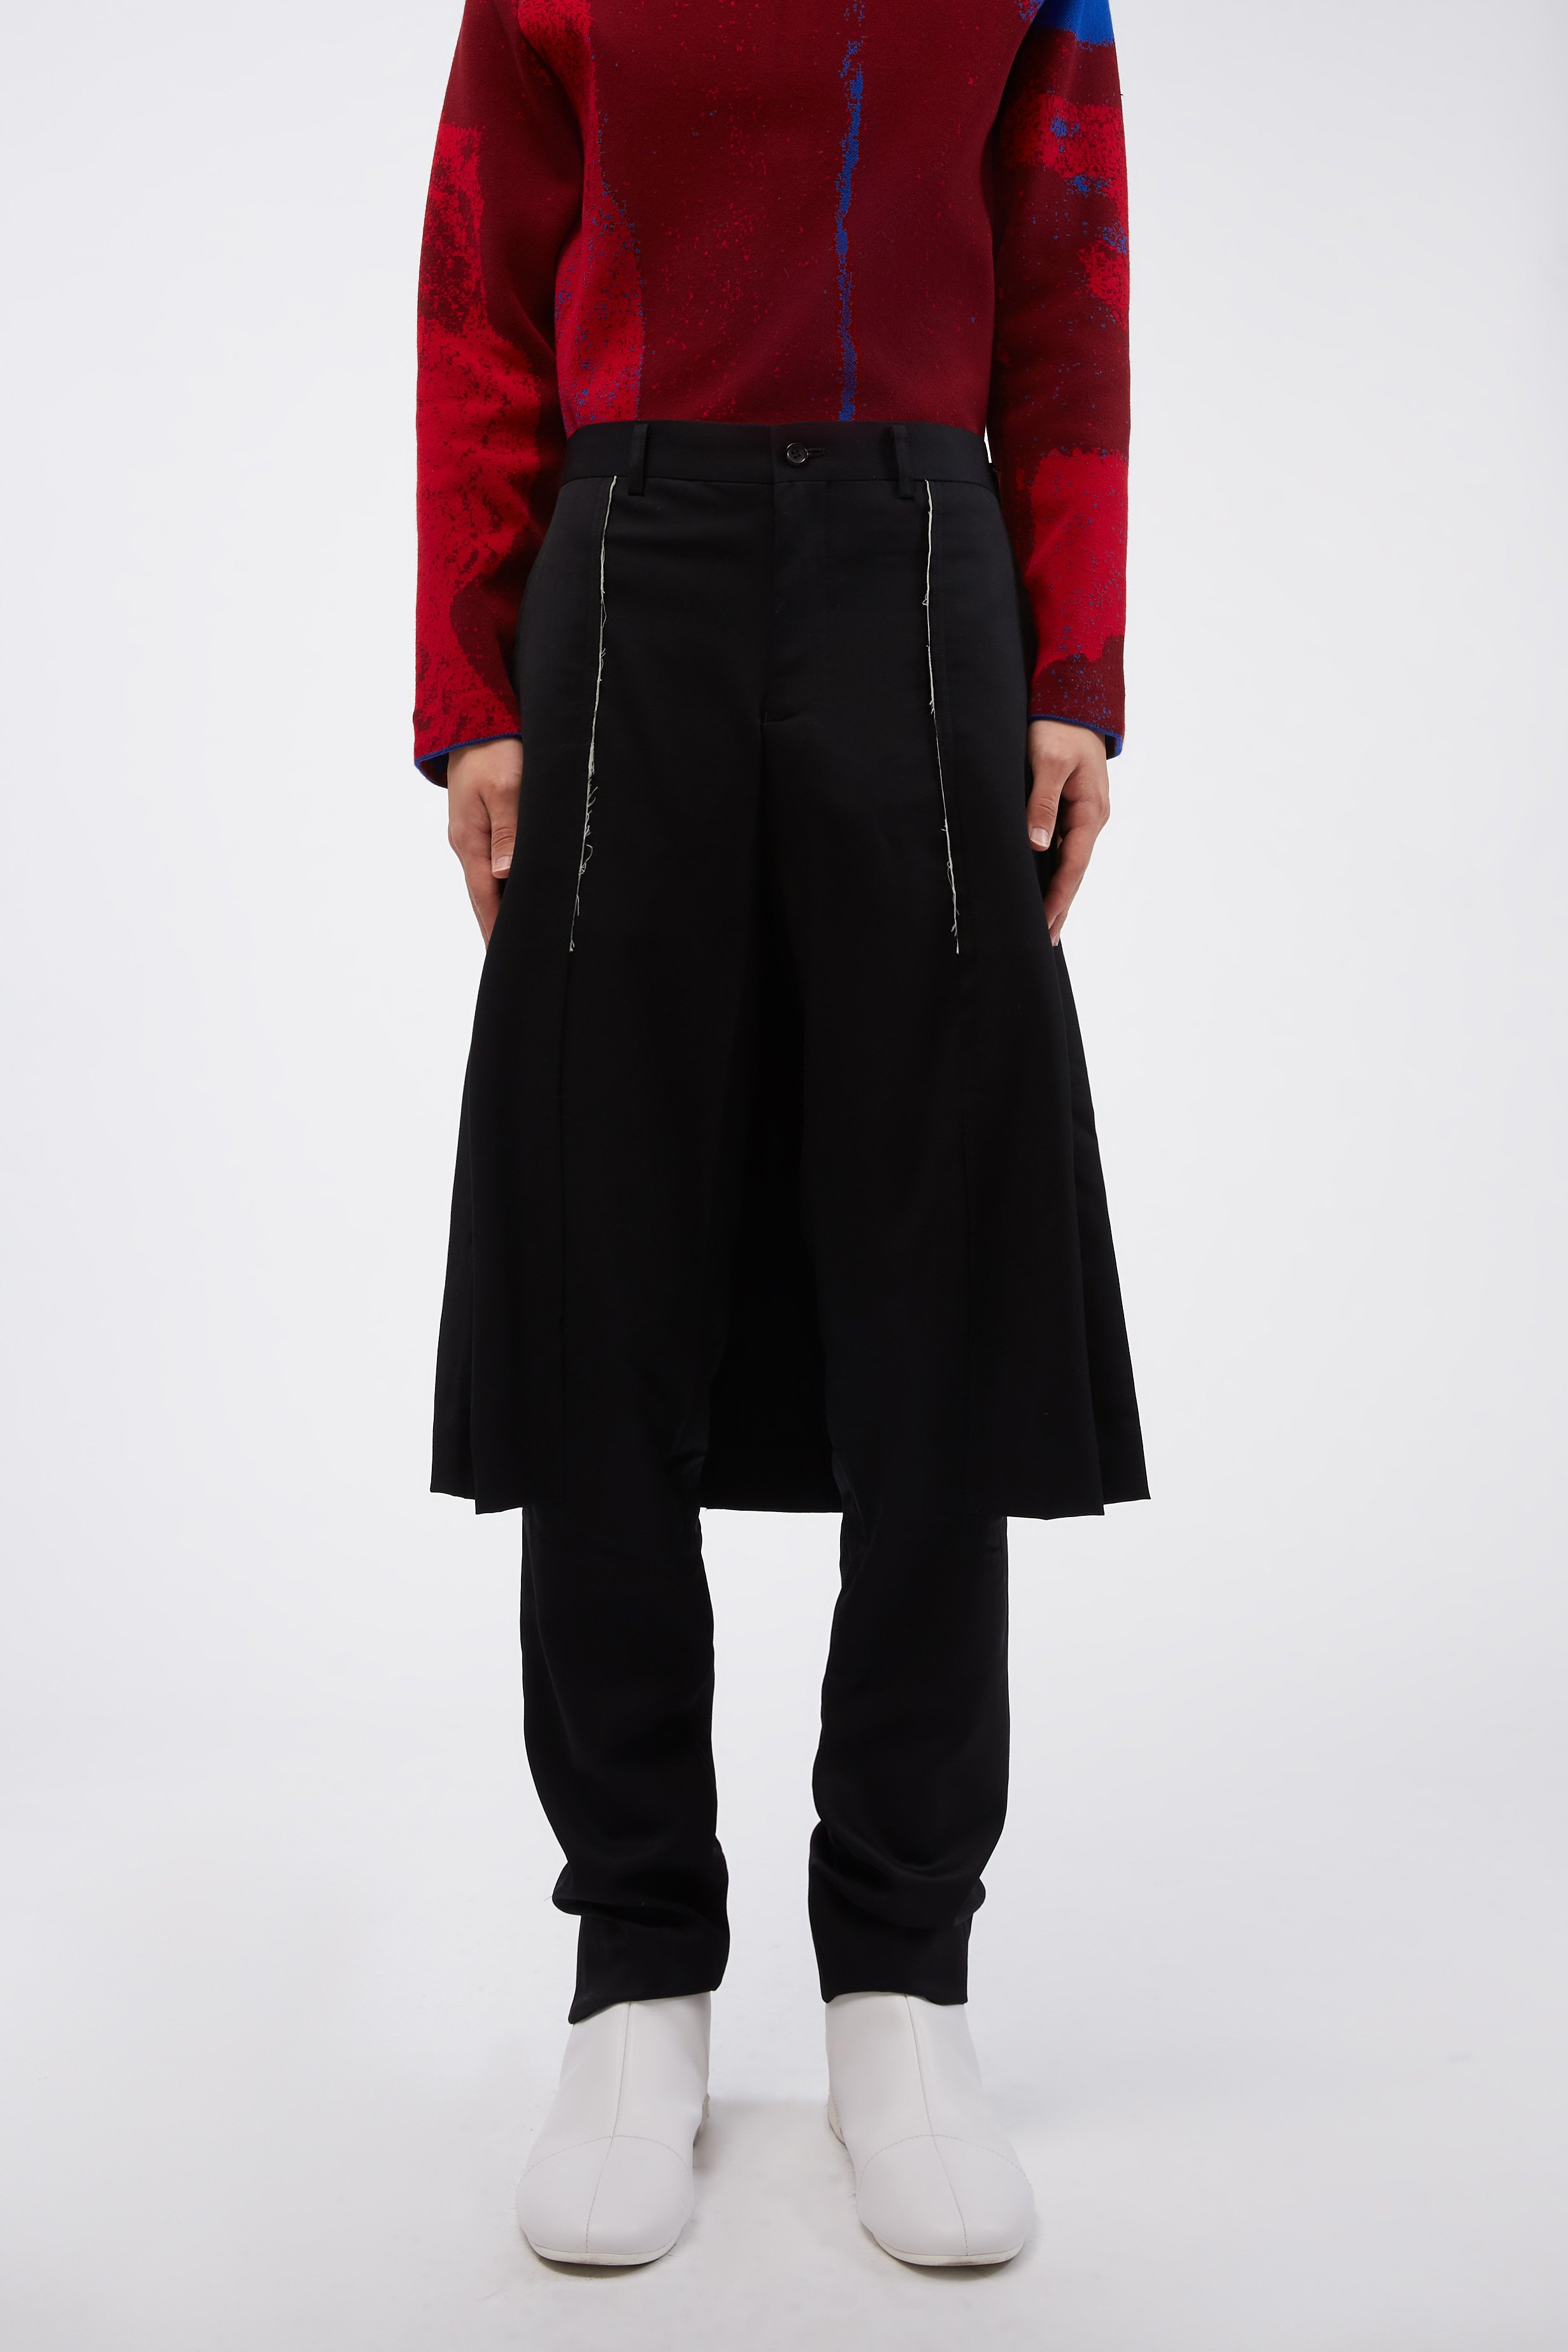 Black Wool Slim Fit Layered Trousers S